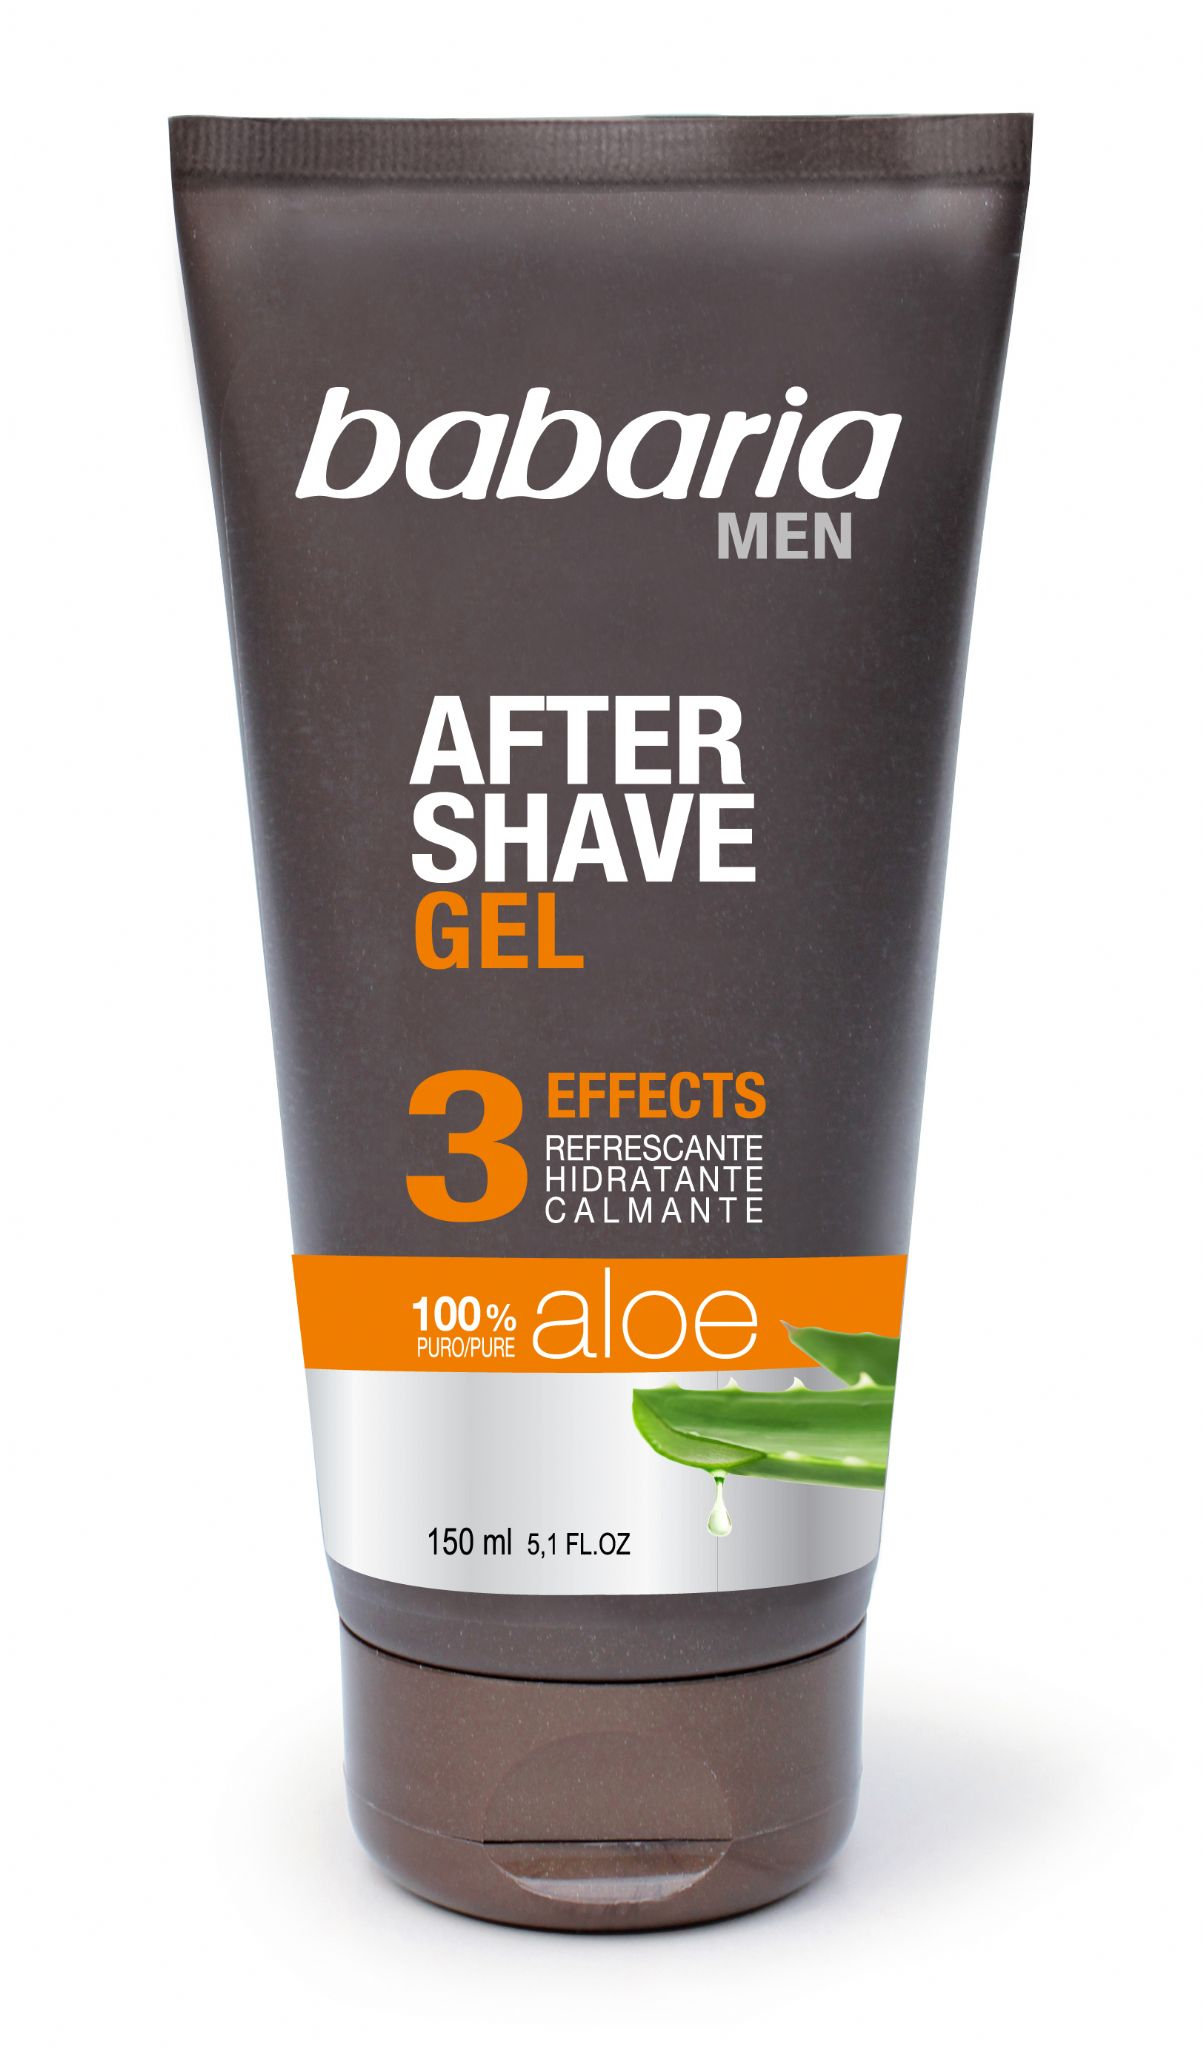 Babaria Men S 3 Effects After Shave Gel 150ml Mia Beauty Ltd